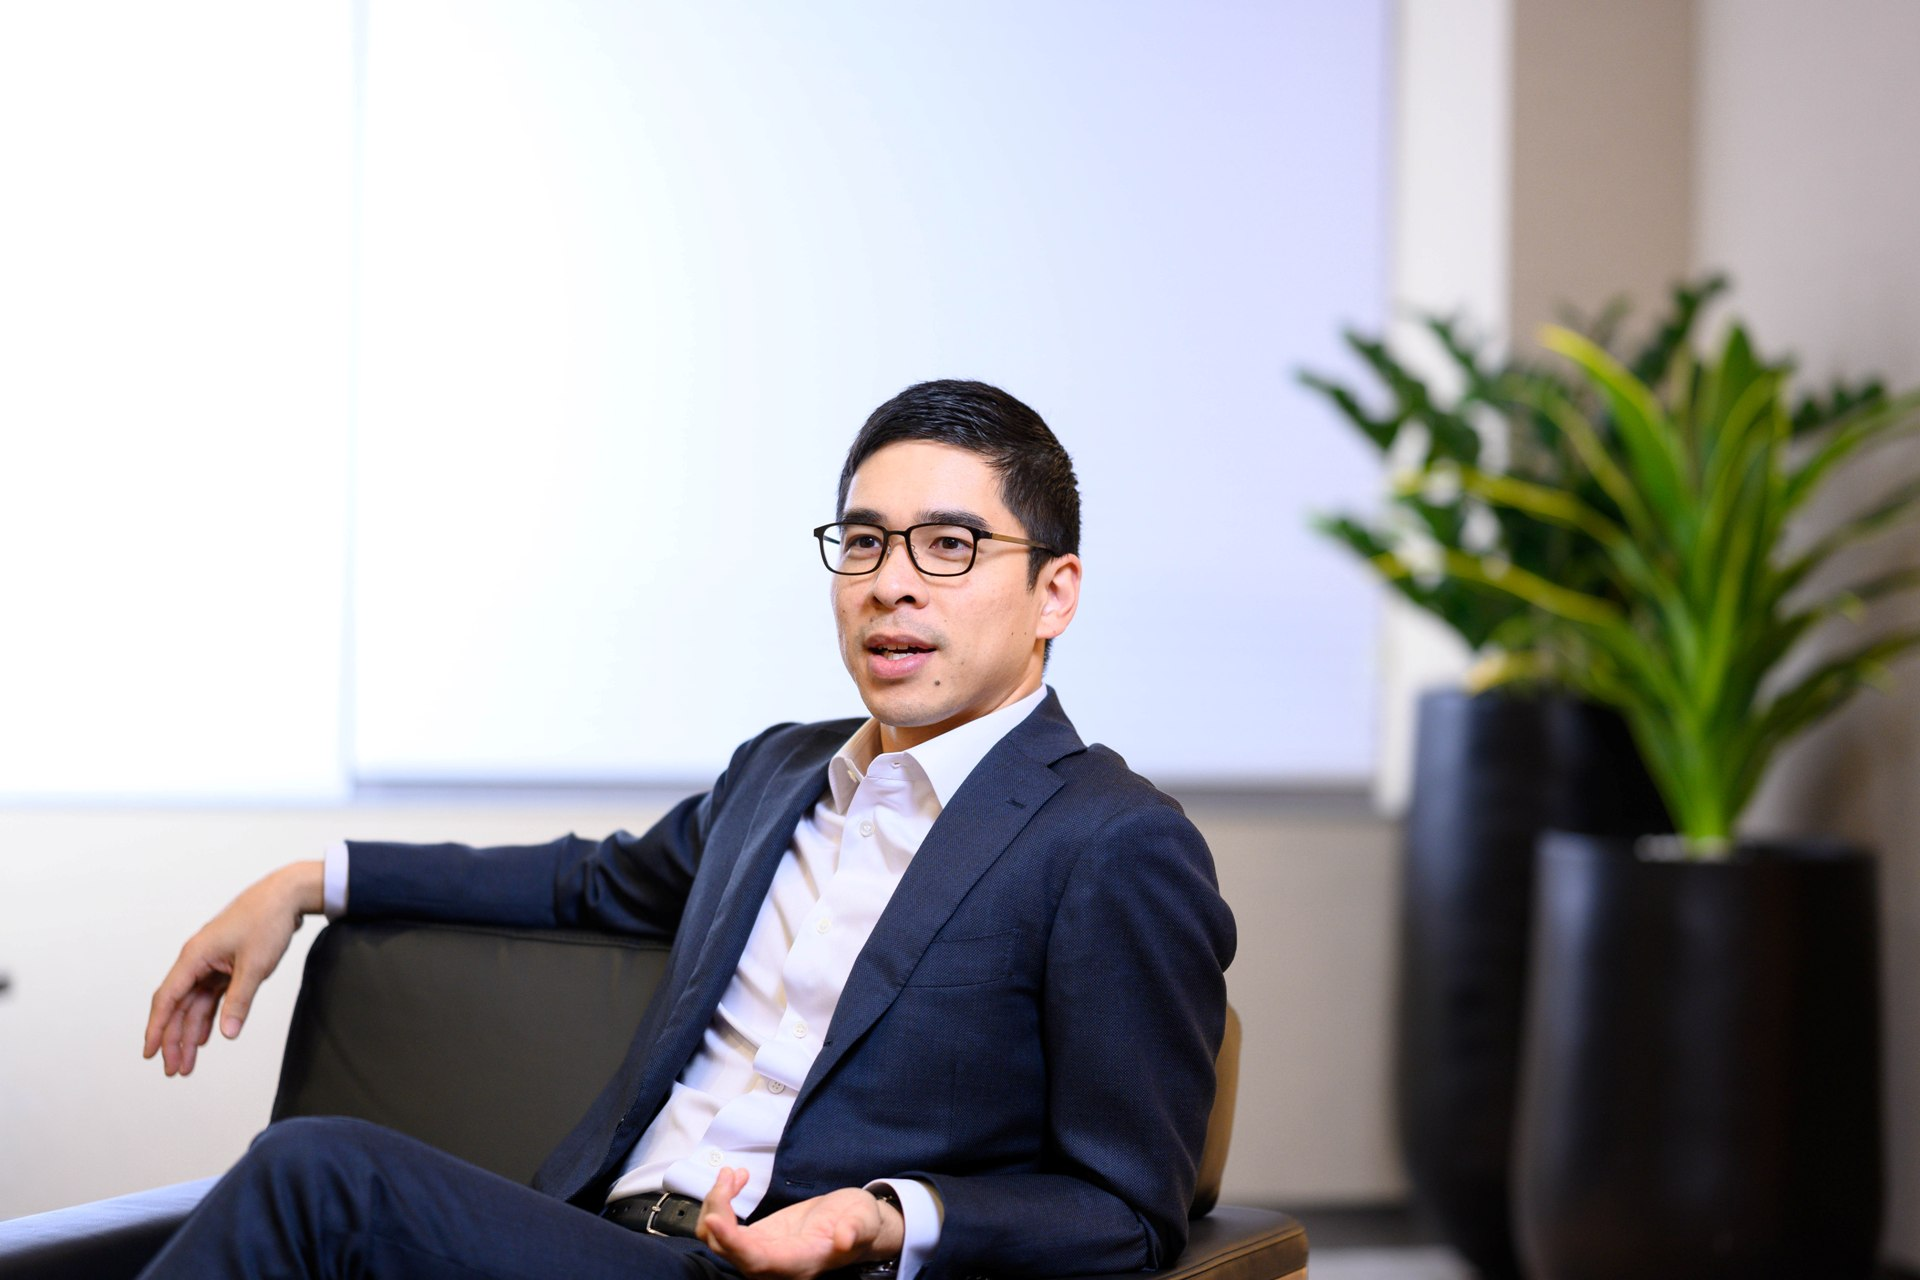 Appointment of Mr. Adriel Chan as Vice Chair of Hang Lung Group and Hang Lung Properties